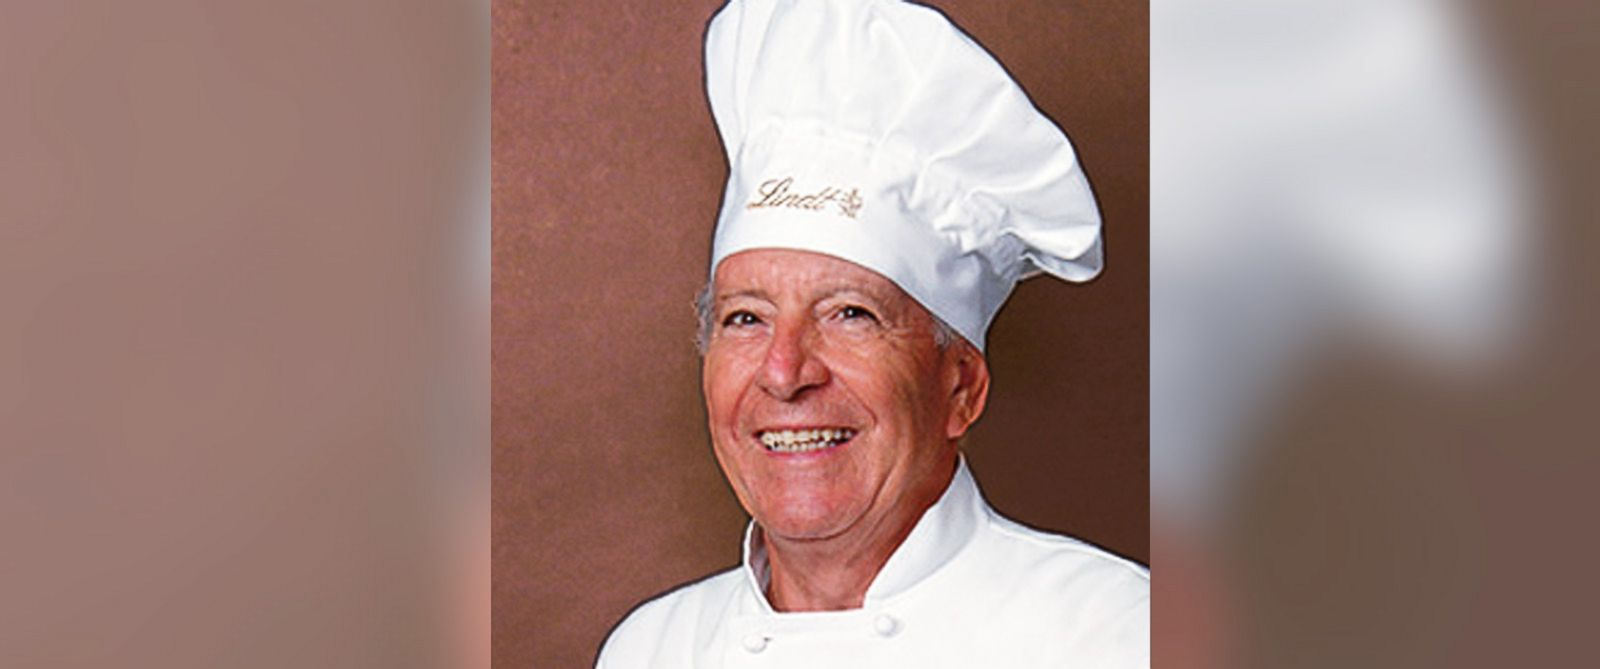 PHOTO: Hans Mazenauer is a retired Swiss Master Chocolatier who finished his long career working with Lindt & Sprungli USA.